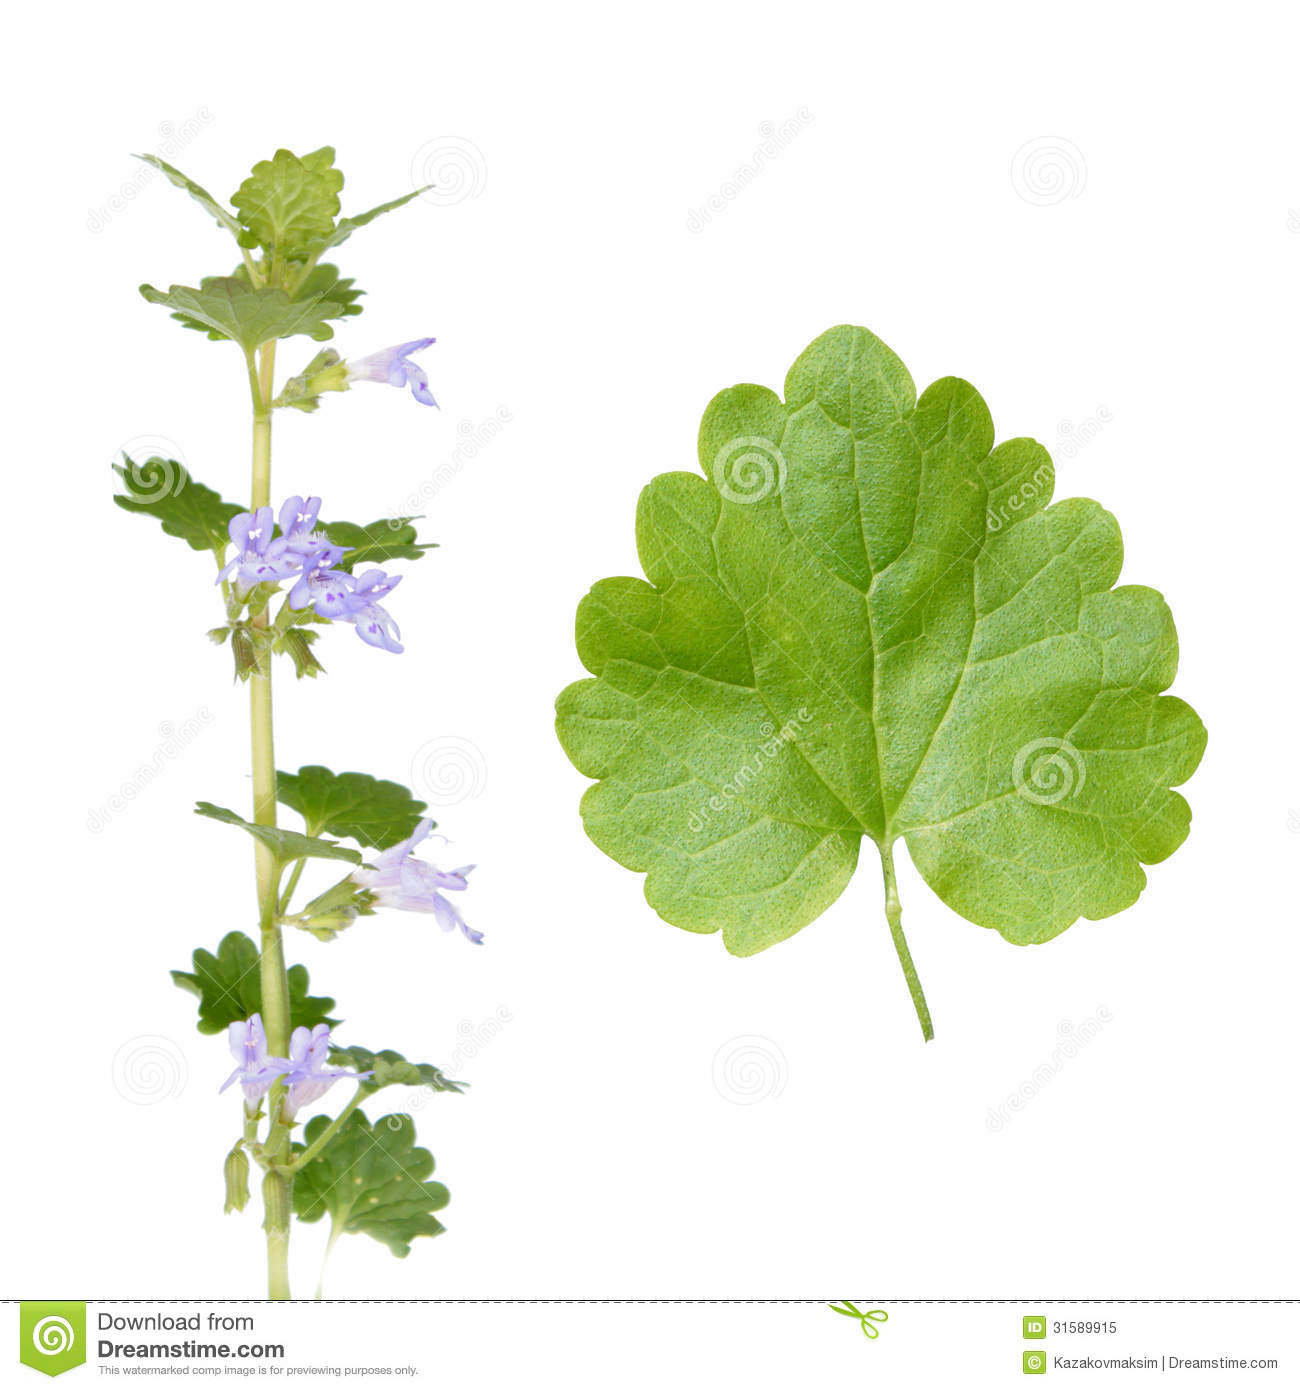 Glechoma Hederacea (Ground Ivy) Royalty Free Stock Photo.